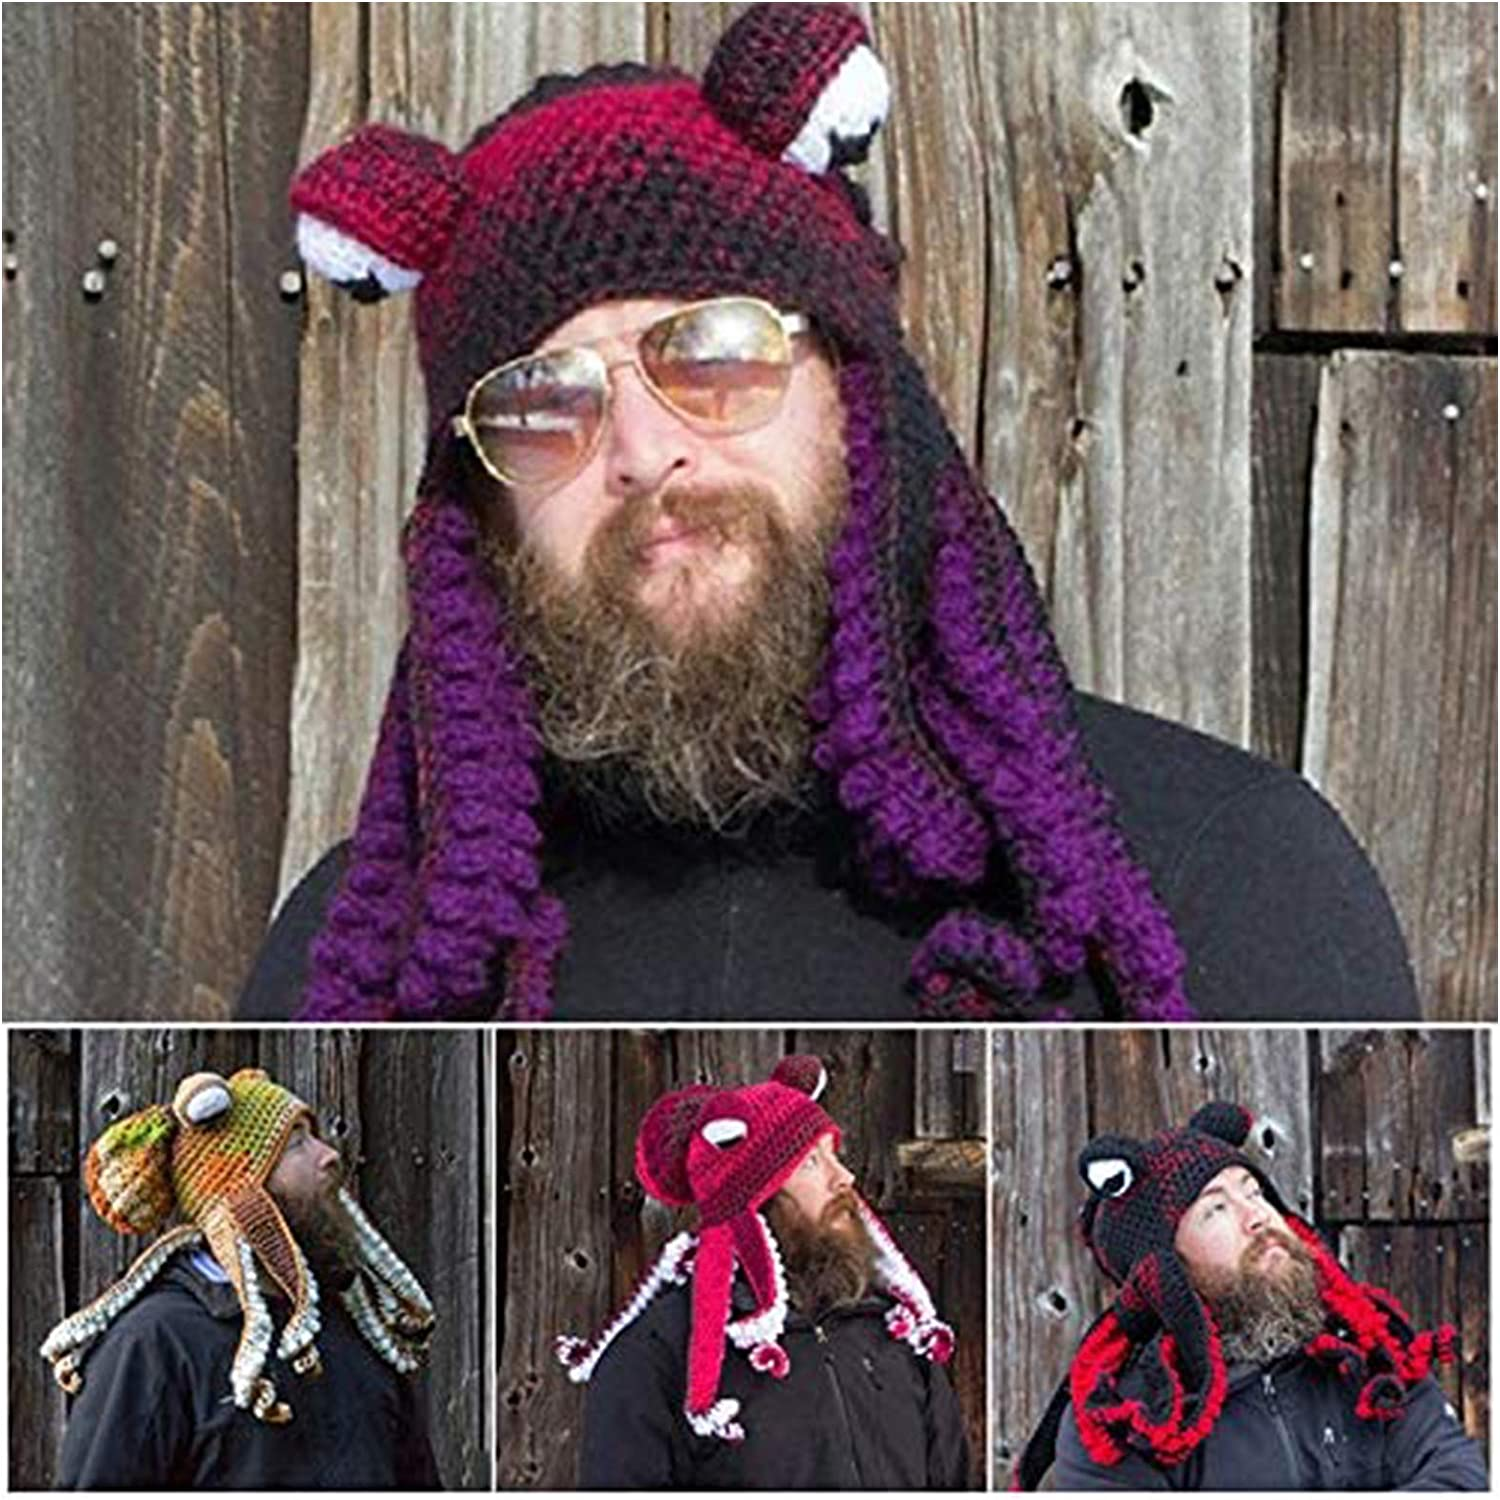 GHJK Octopus Hat Hand Knitted Octopus Tentacle Hat Unique Soft and Warm Adult Party Costume for Christmas Halloween Cosplay Black red